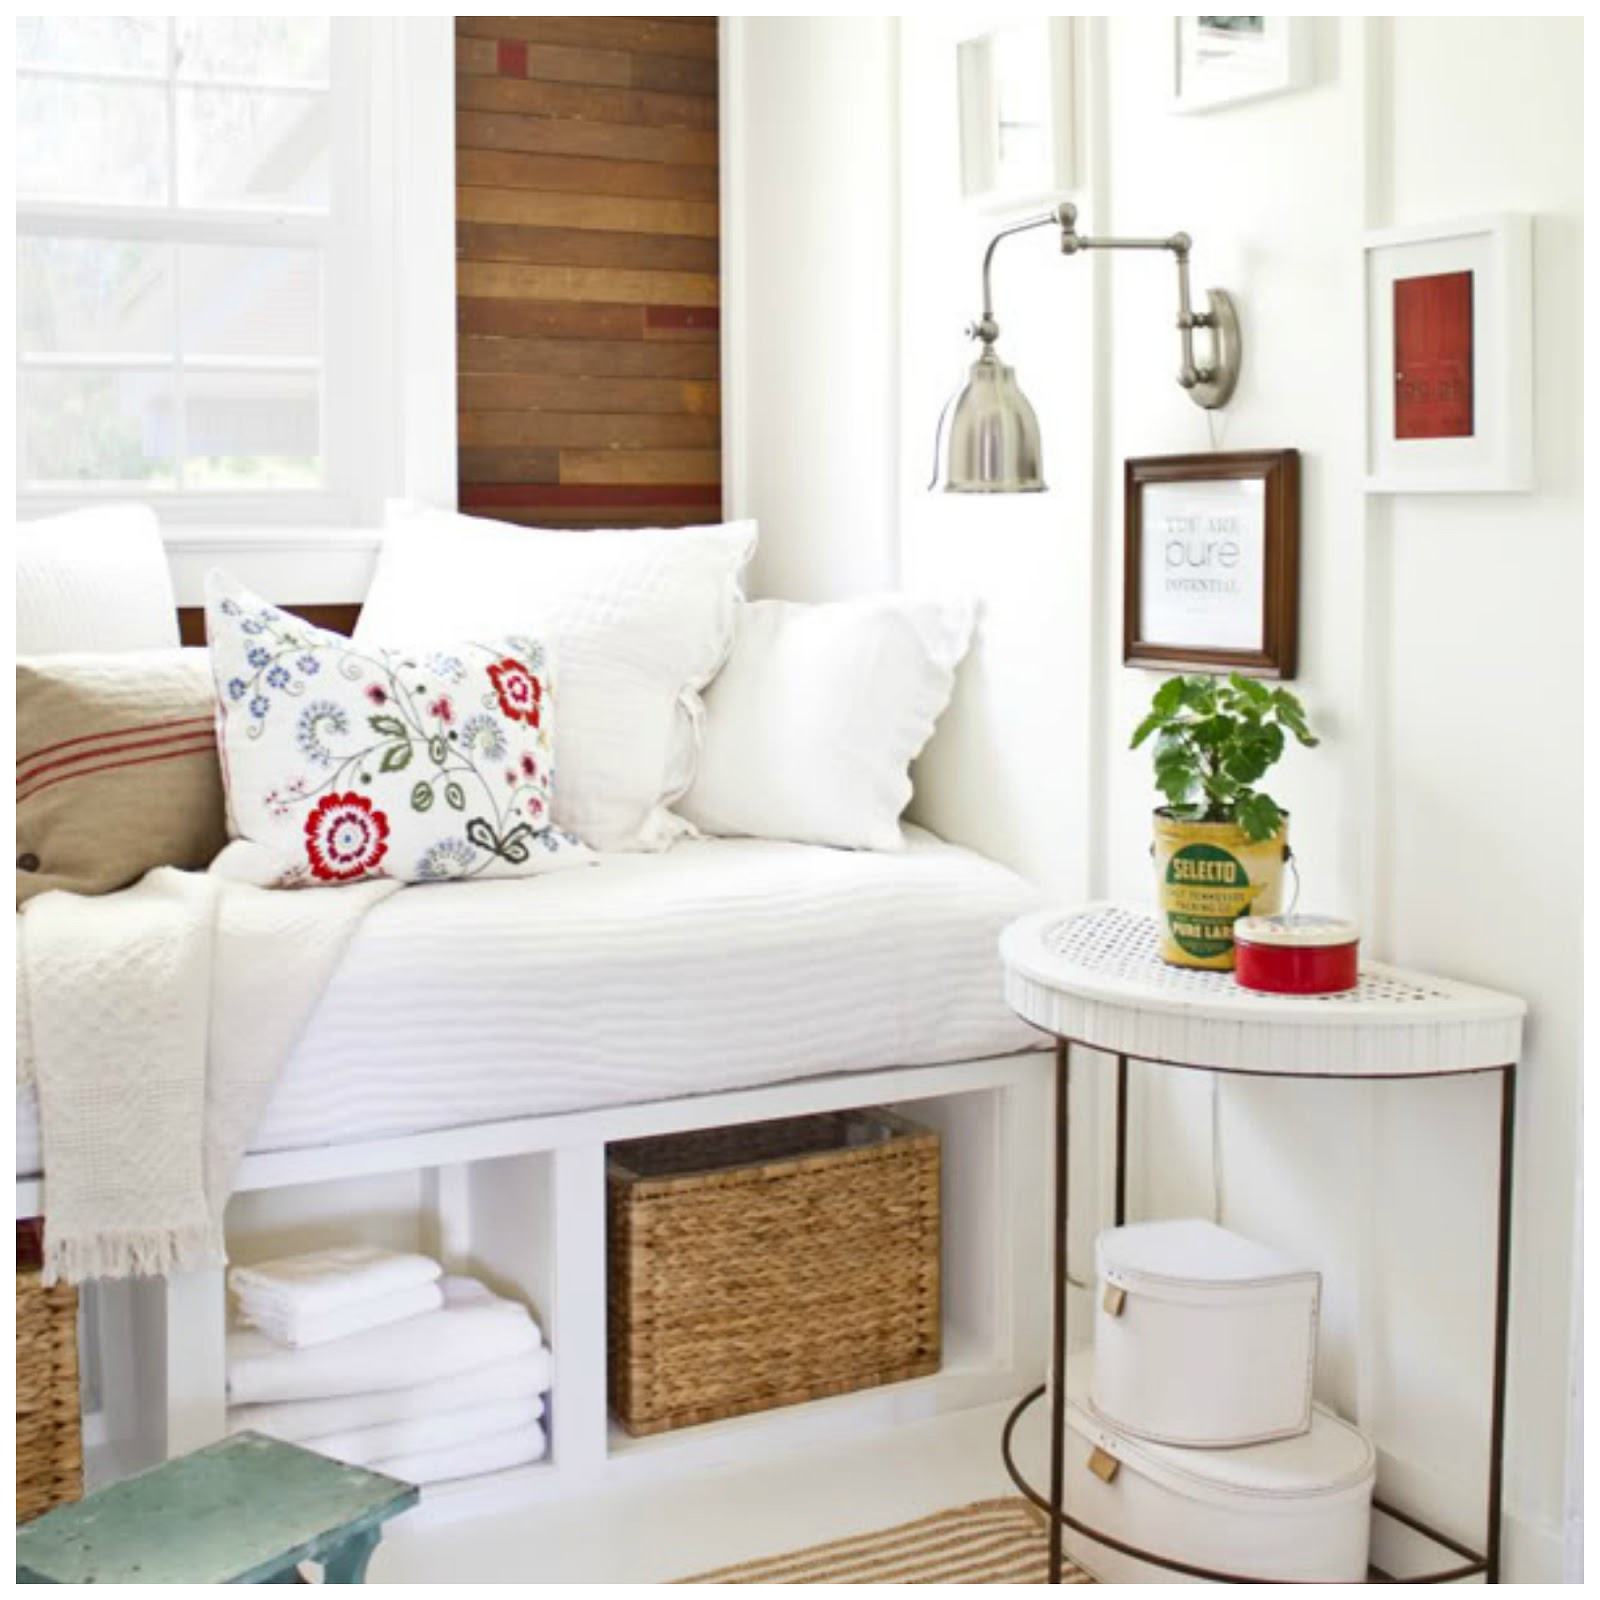 Room Makeover And A Box Bed: Fresh Ideas + Cleverly Modern Design